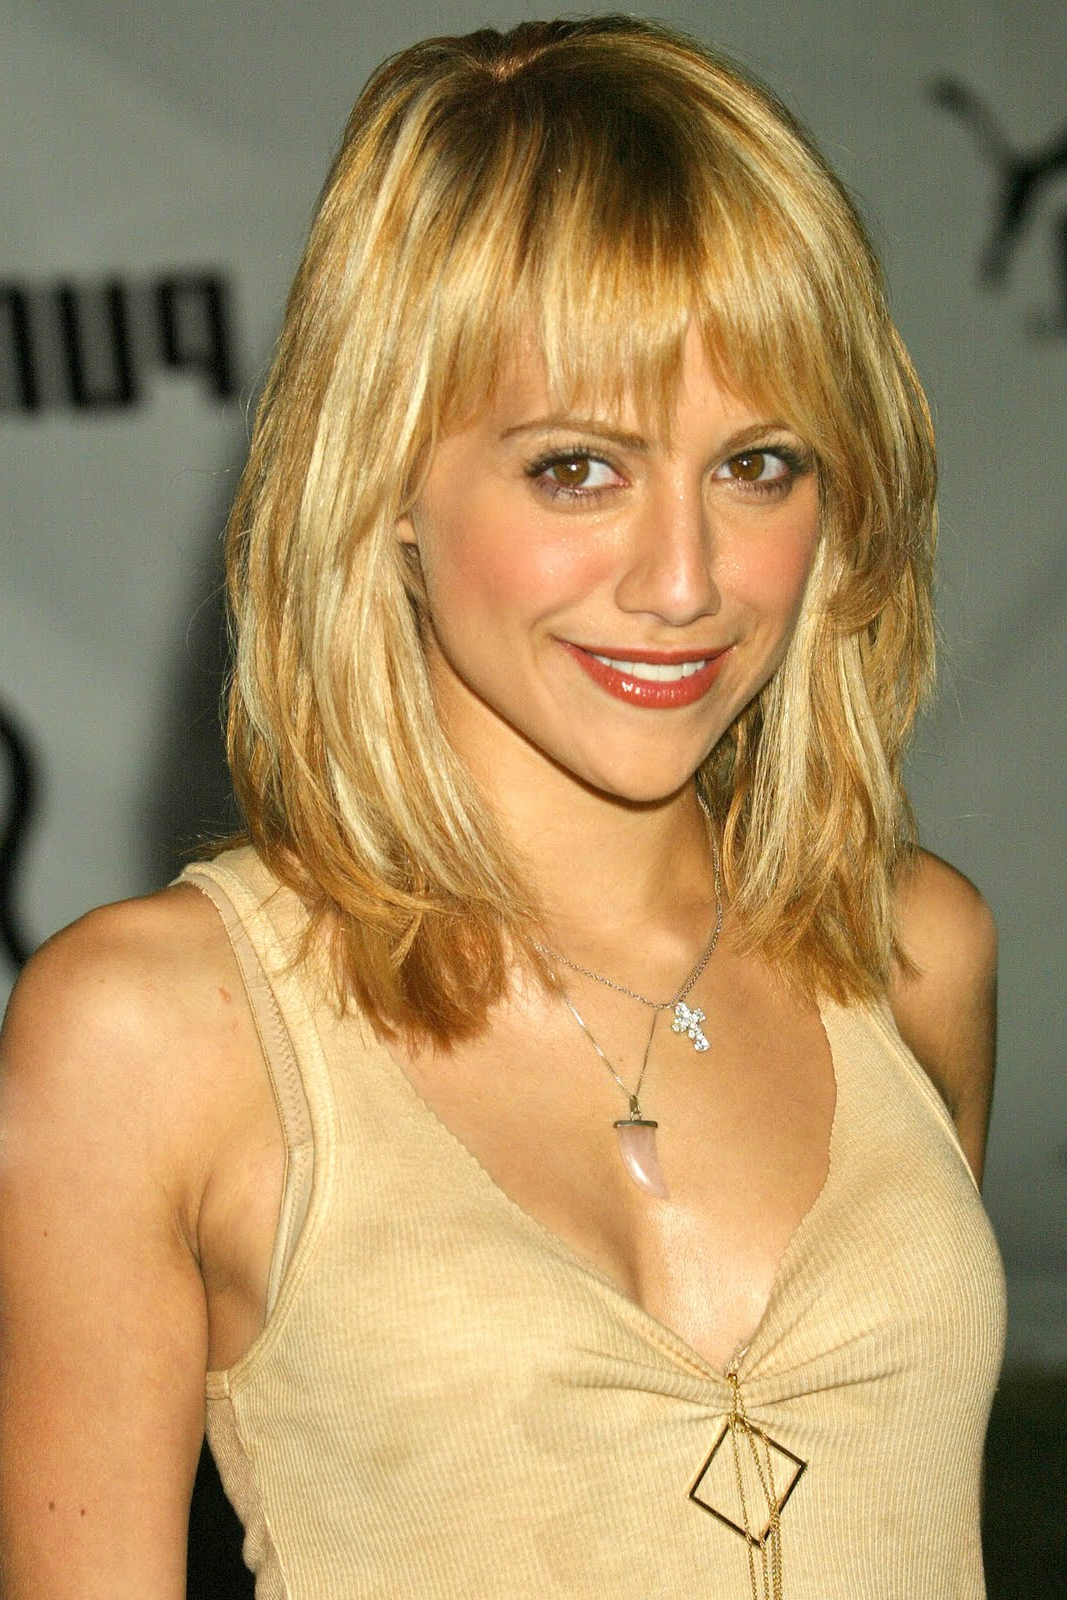 Well Liked Mid Length Haircuts With Side Layers With Medium Length Haircuts With Short Layers – Hairstyle For Women & Man (View 20 of 20)